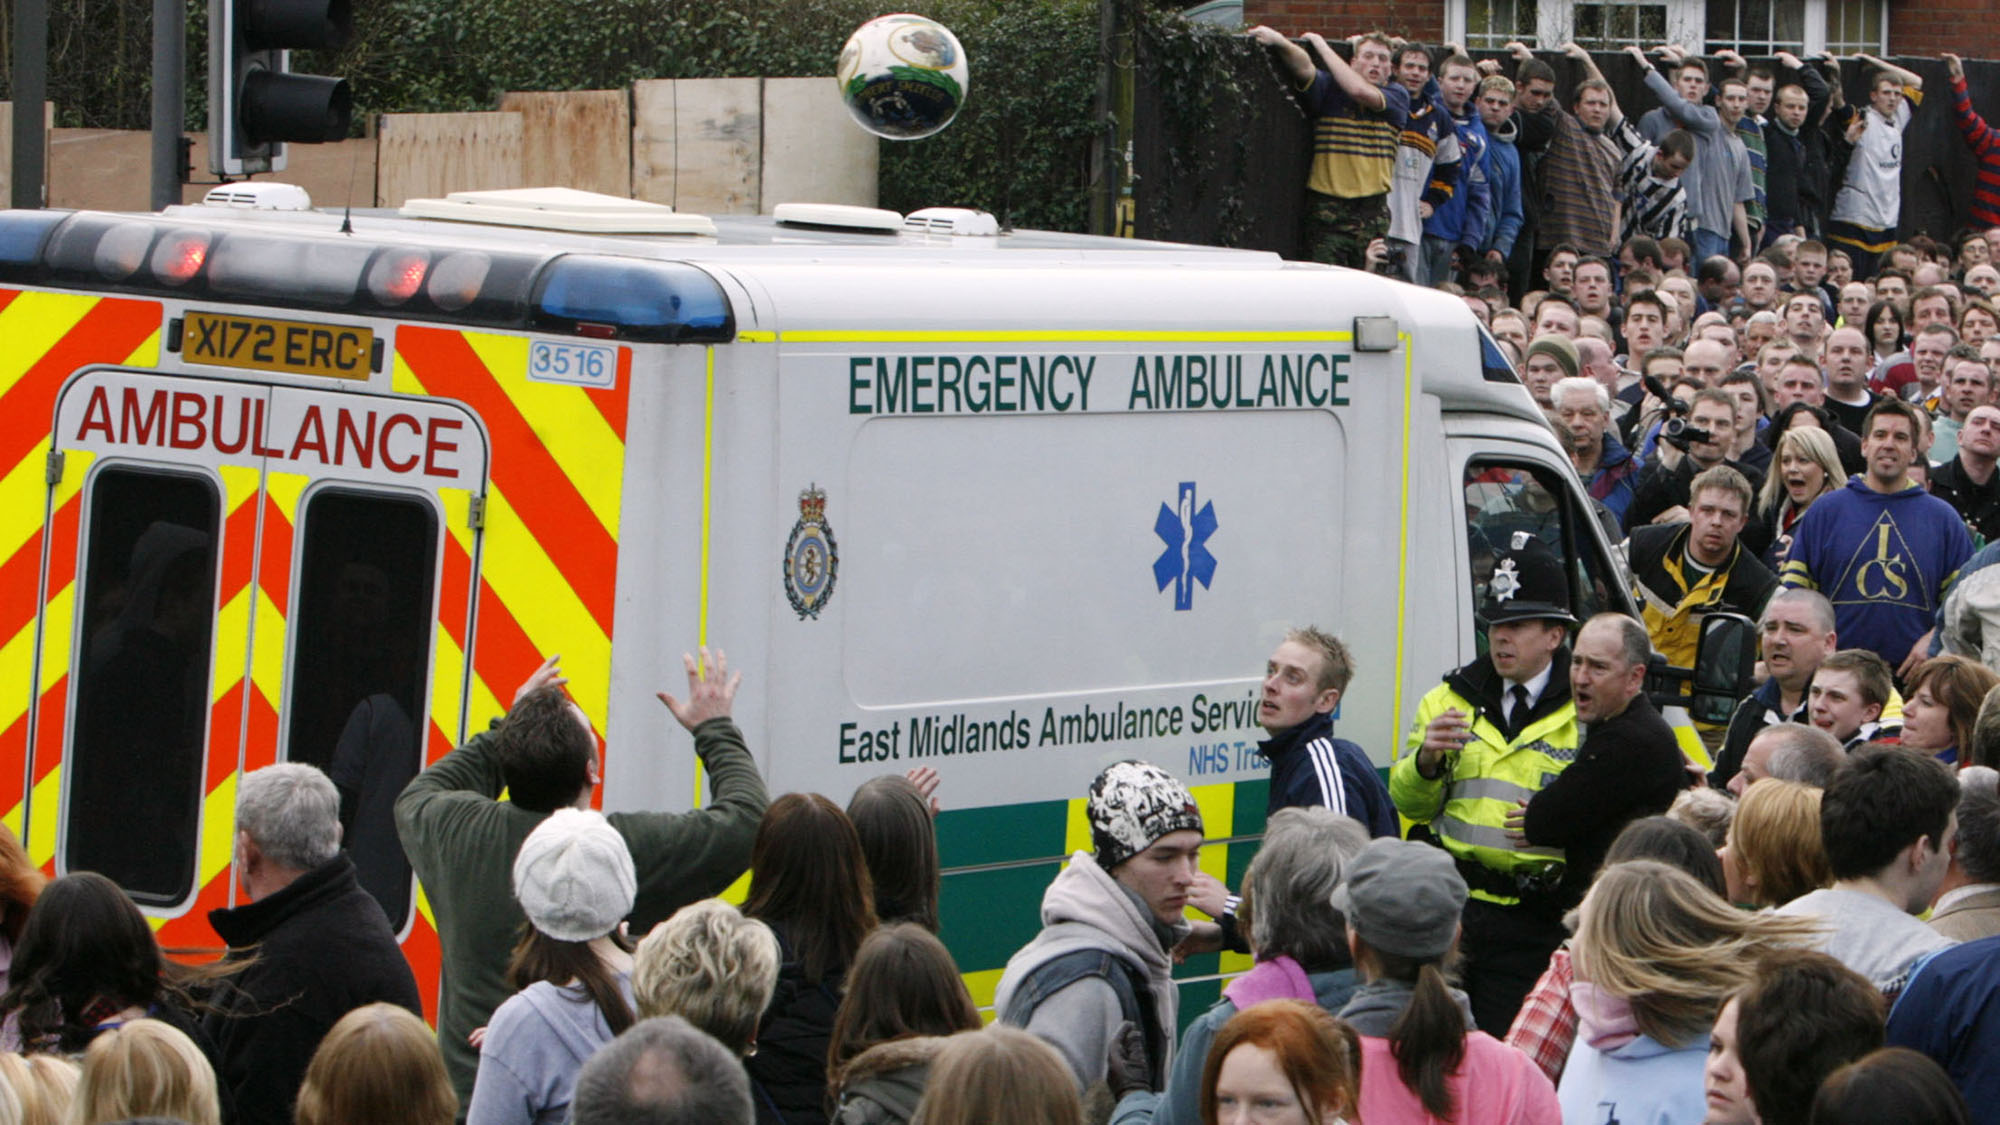 A British police officer throws the ball as an ambulance attempts to pass during the Shrovetide football match in Ashbourne, central England, February 20, 2007. The game dates back to the 17th Century. The aim of the teams, the Up'ards and the Down'ards, is to score by tapping the ball three times on stone goal plinths three miles apart on the banks of the River Henmore.